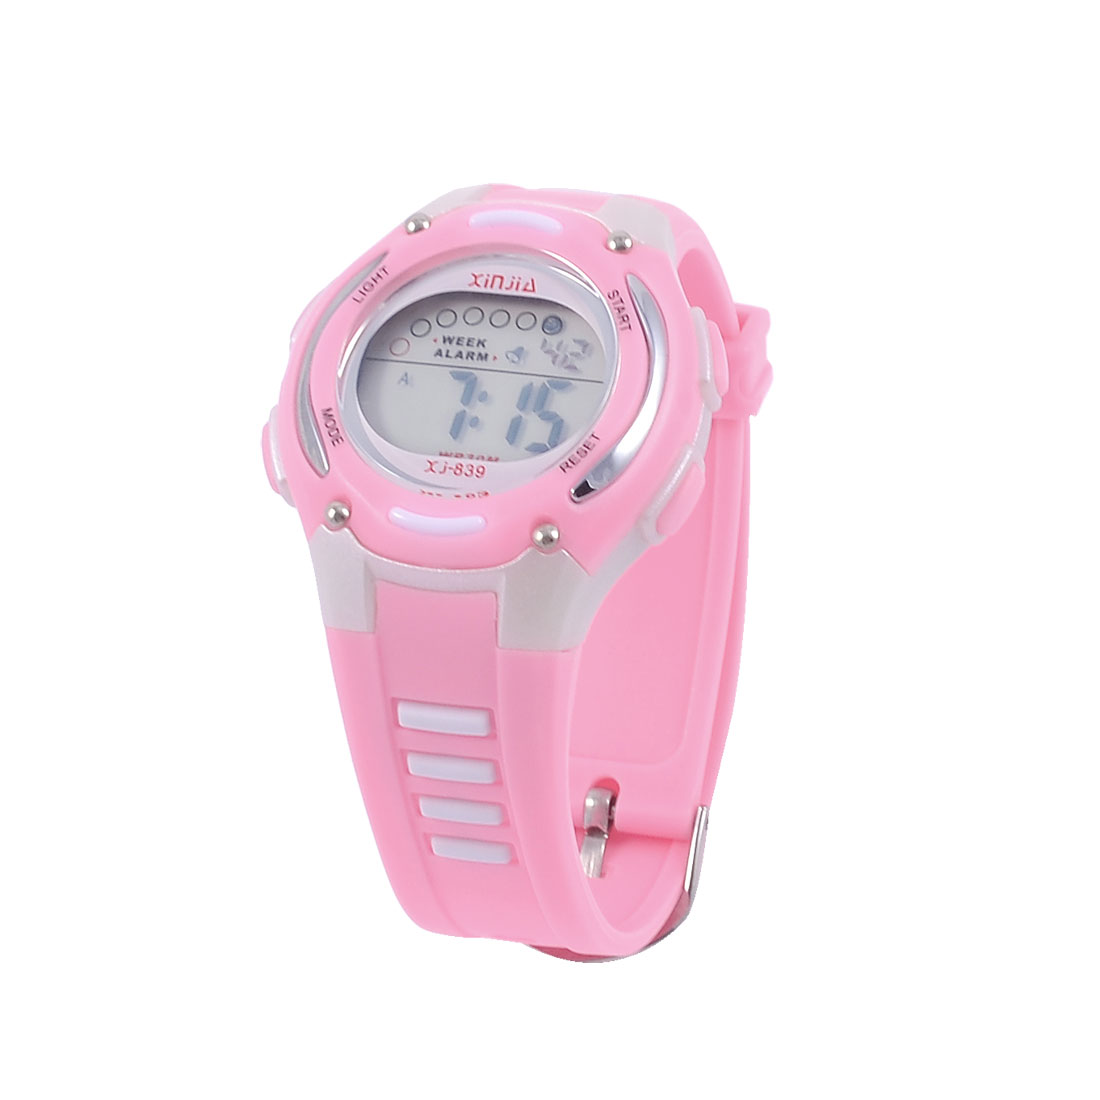 Ladies Adjustable Wrist Band Water Resistant Stopwatch Digital Watch Pink